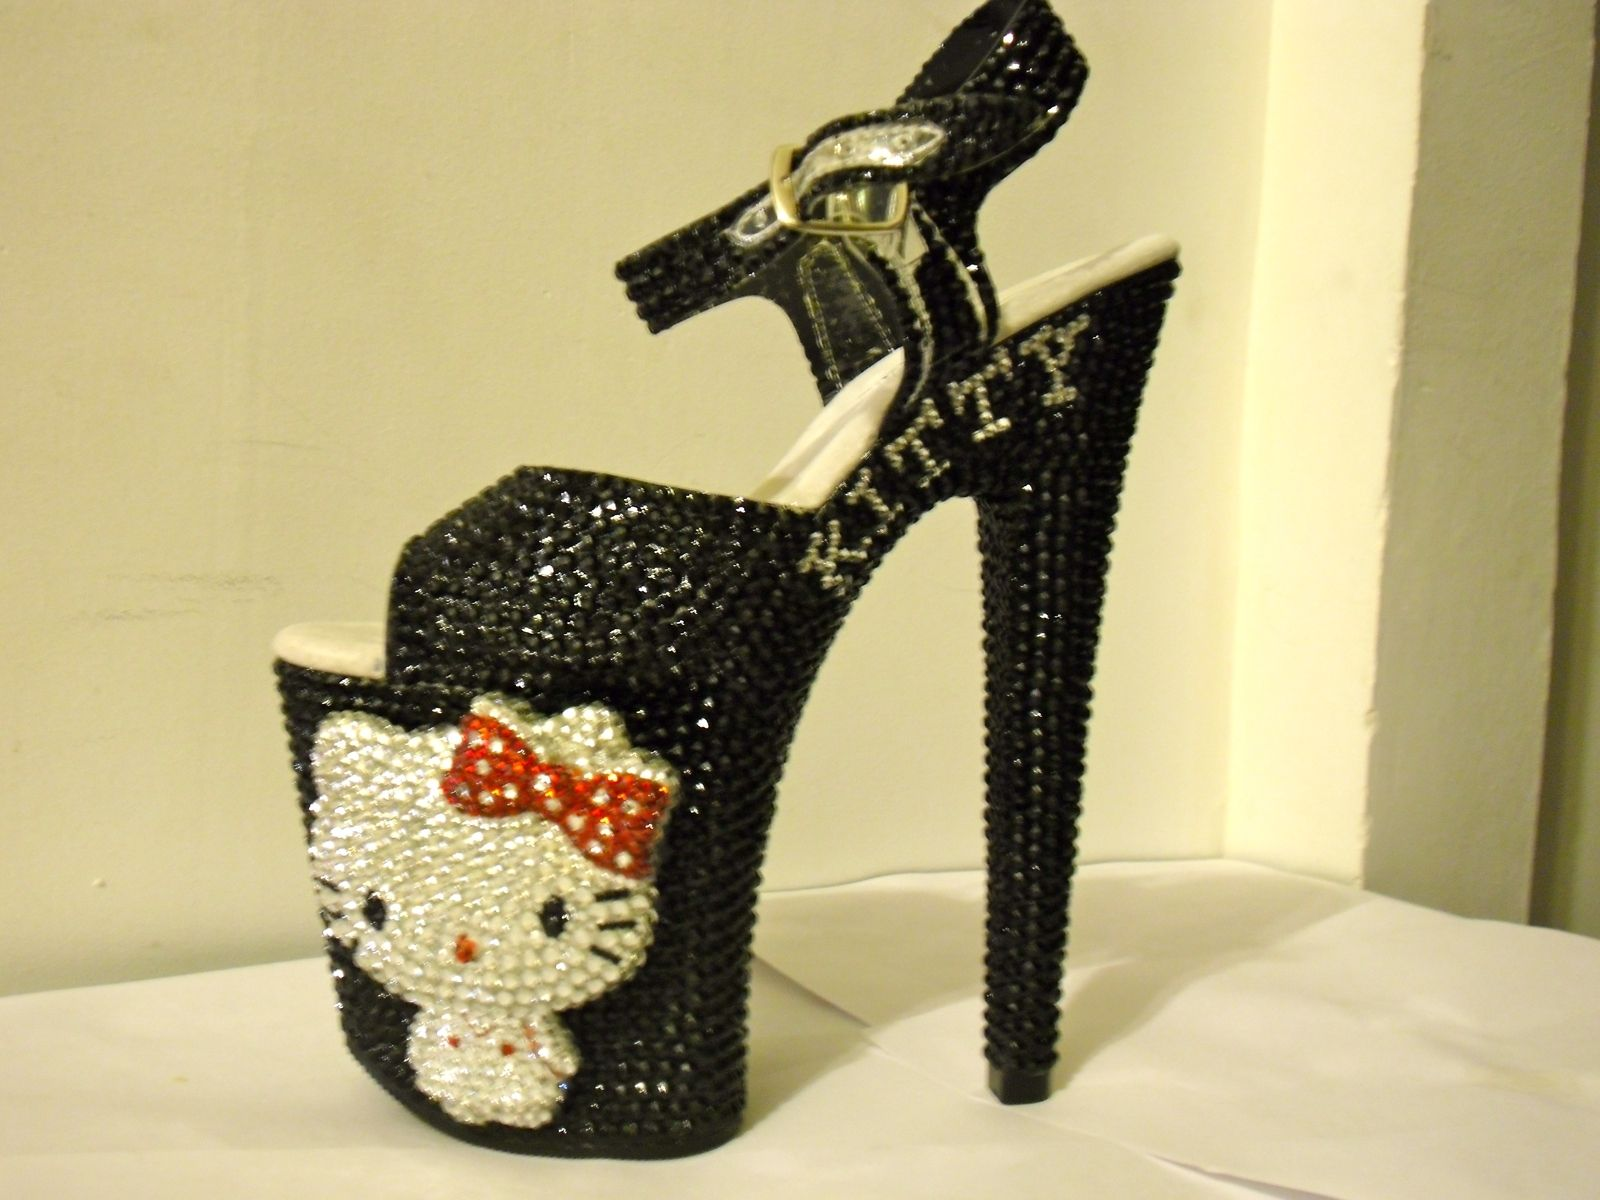 1a4dddbce9e Buy a Hand Crafted 3d Crystallized Hello Kitty Heels (Black/Red ...